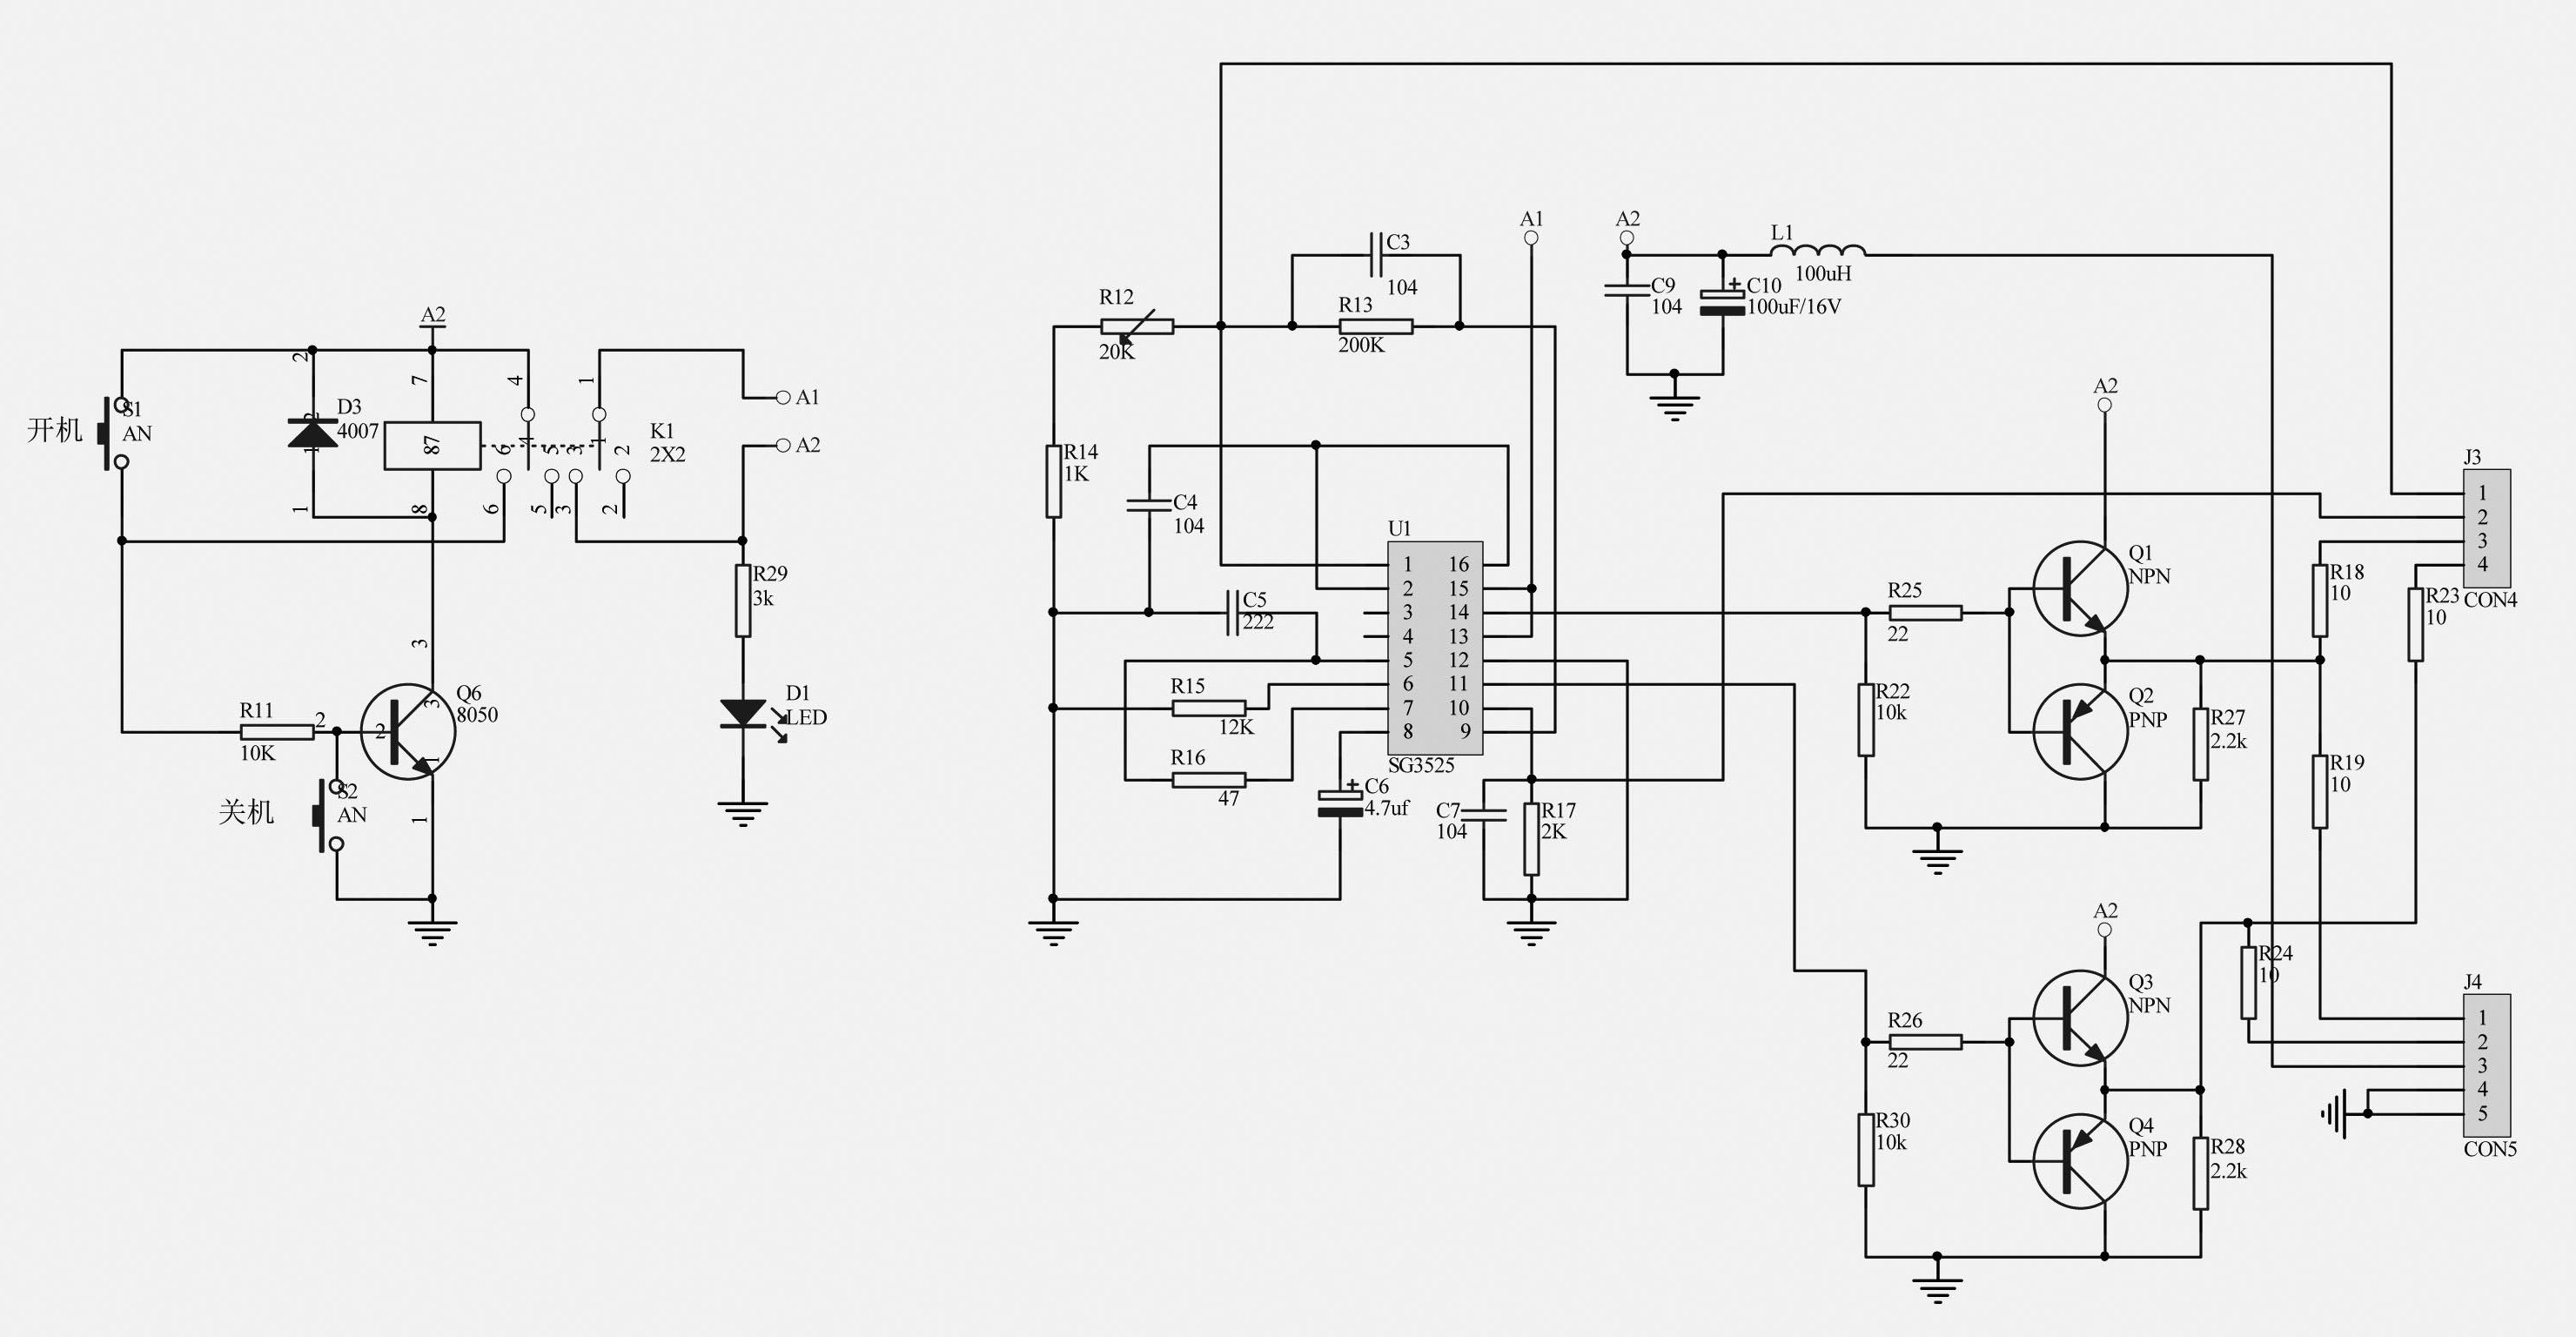 solar panel inverter circuit diagram diymidcom new model wiring solar panel inverter circuit diagram diymidcom [ 2960 x 1536 Pixel ]